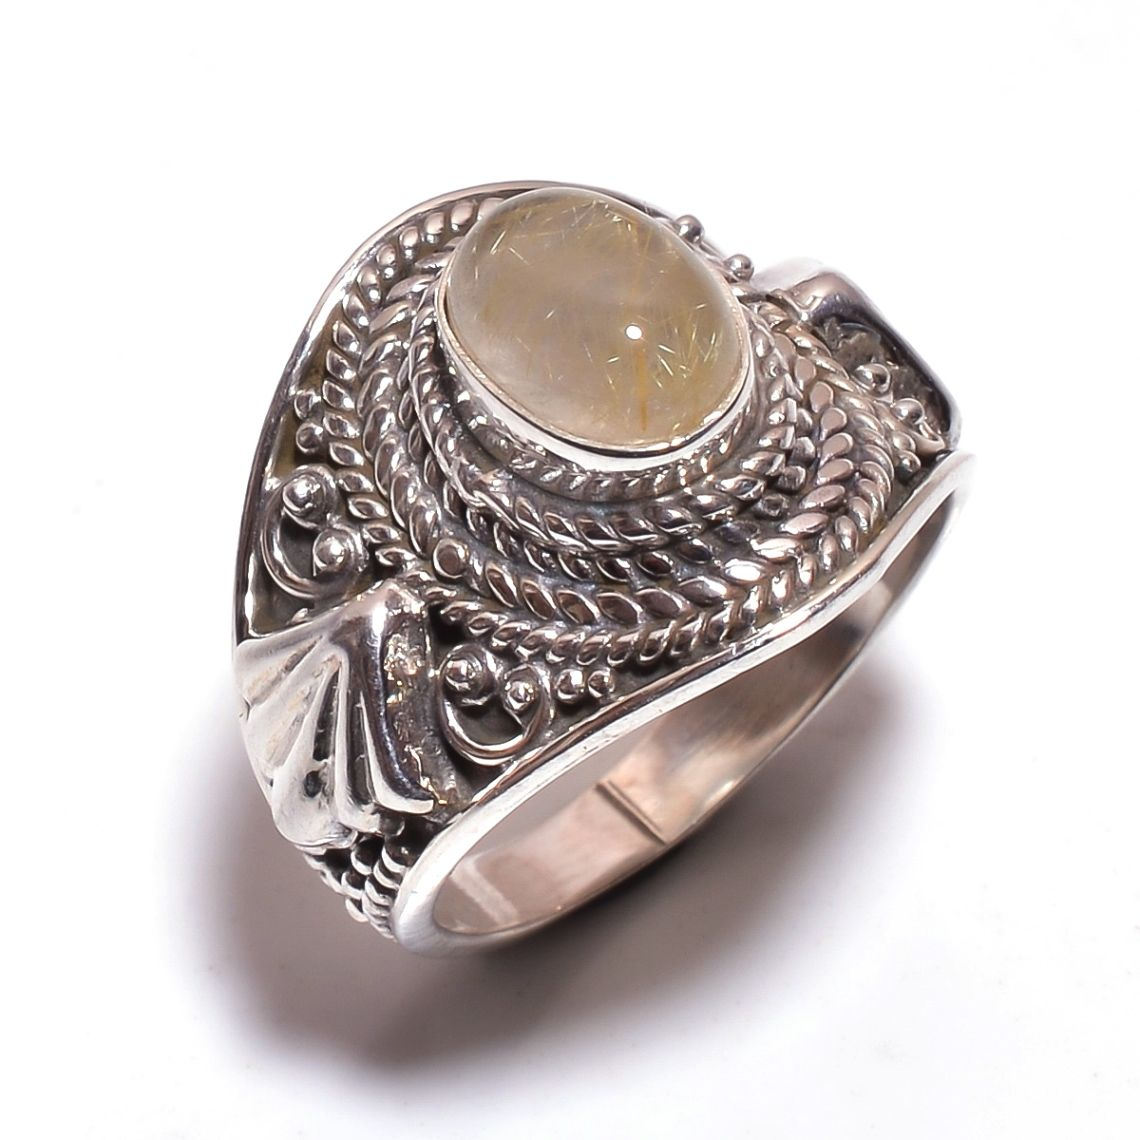 Golden Rutile Gemstone 925 Sterling Silver Ring Size 6.5